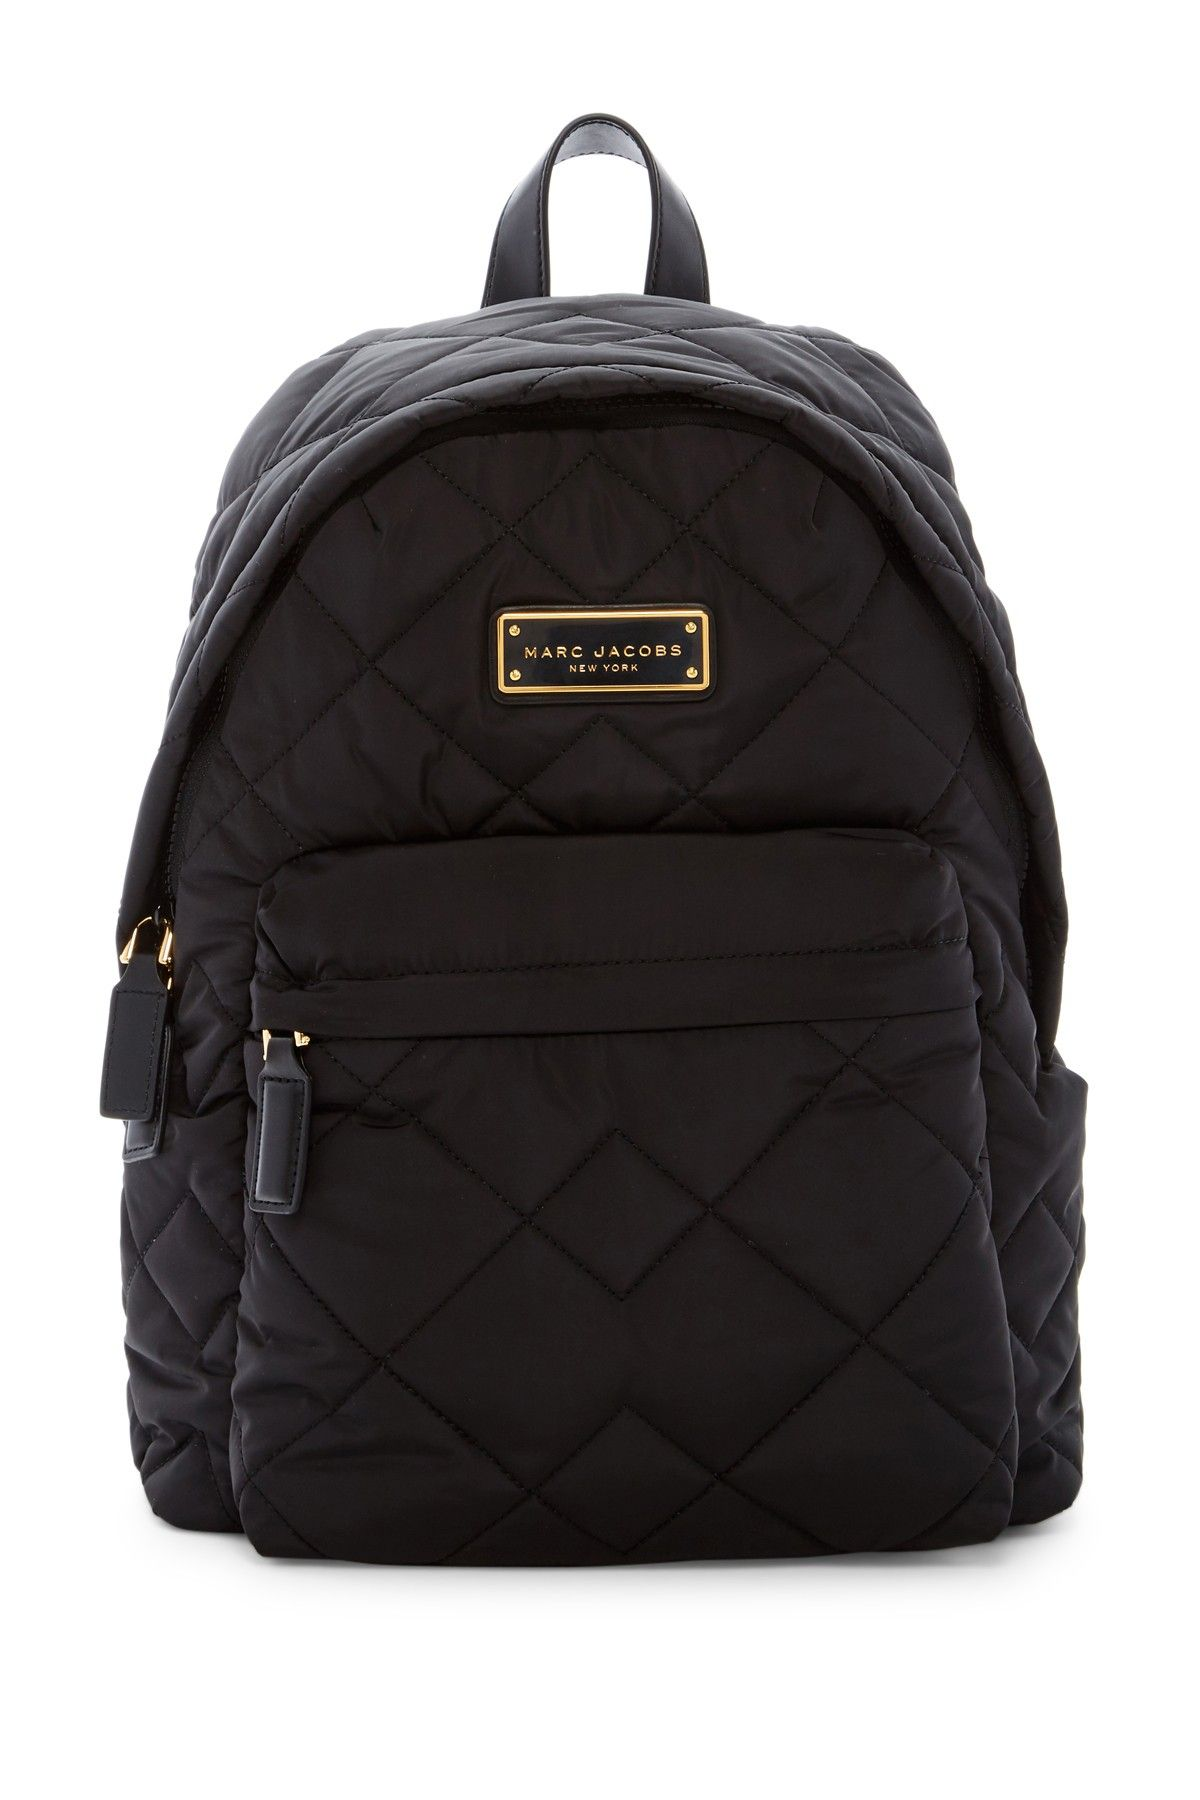 99bc89d762 Quilted Nylon Backpack by Marc Jacobs on  nordstrom rack